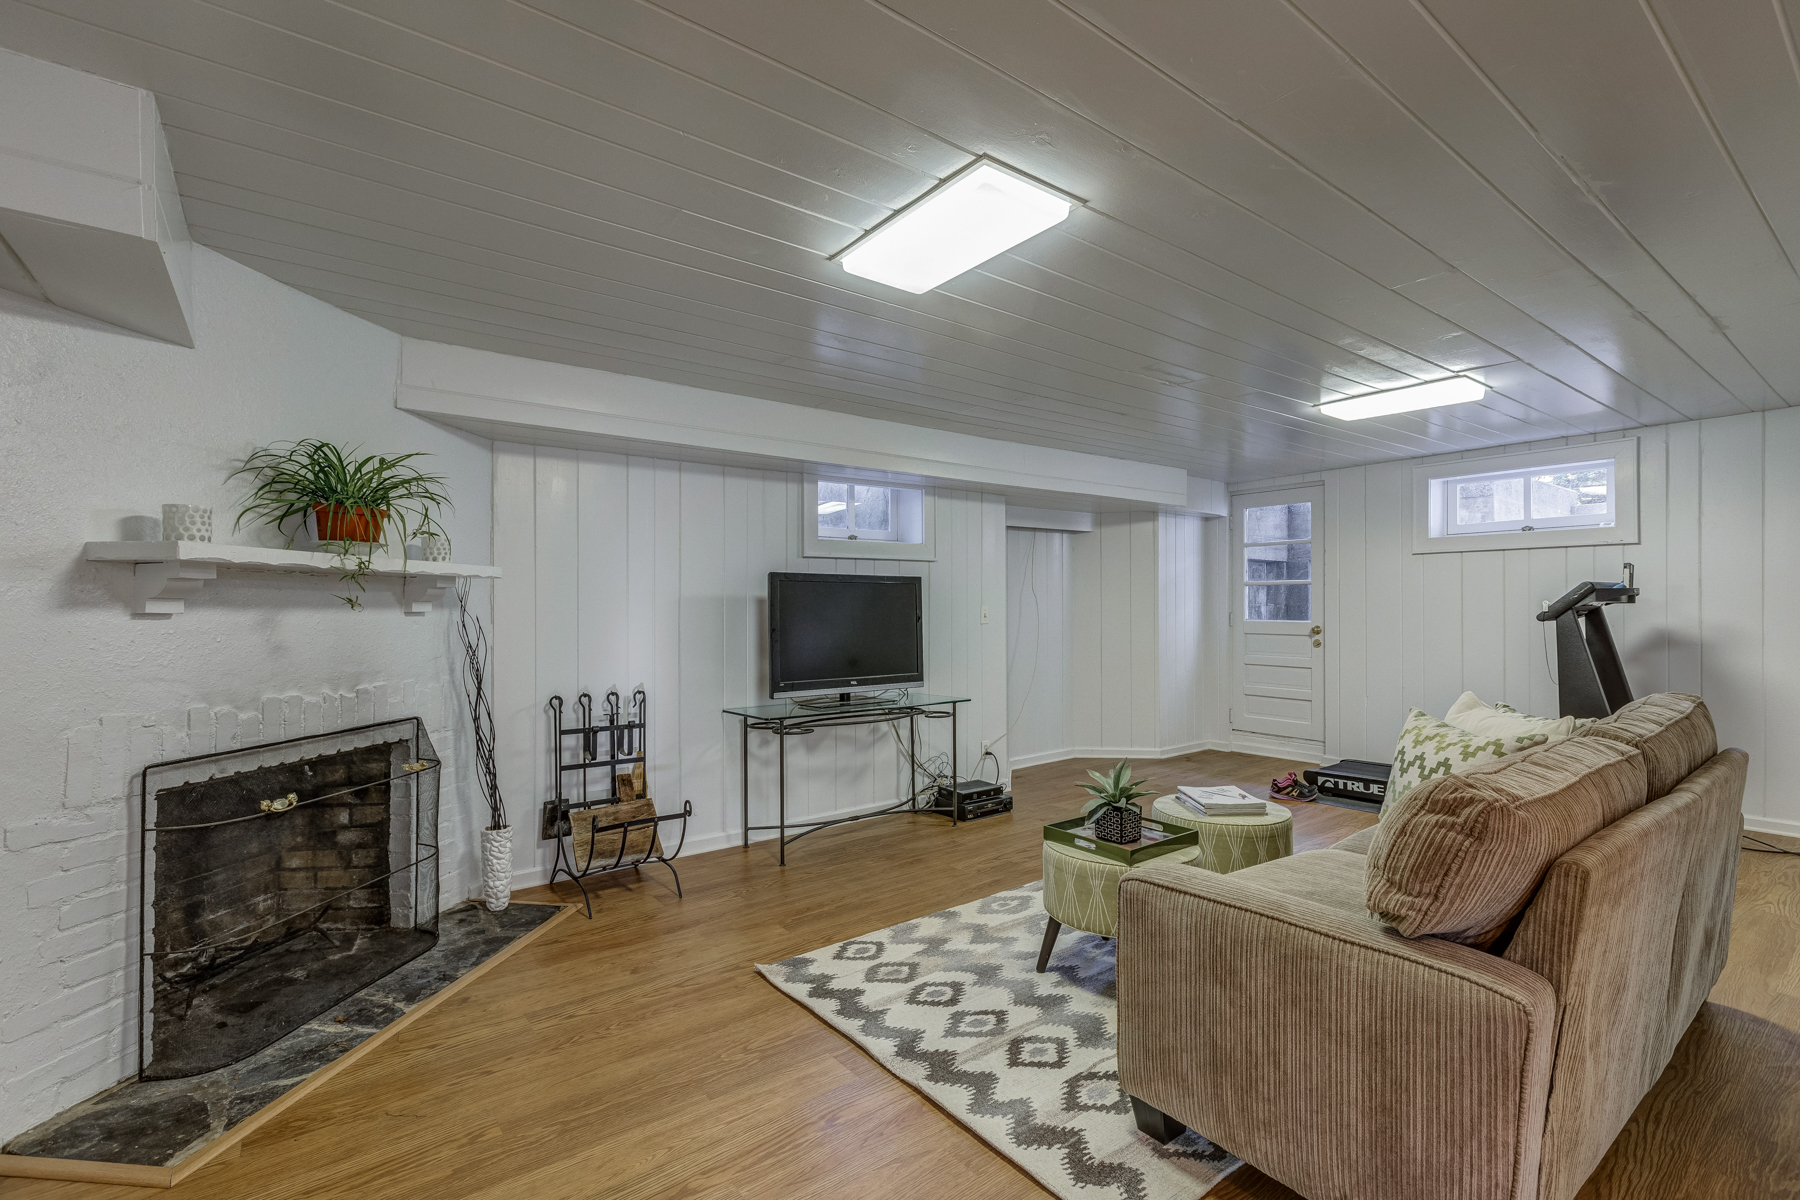 19. Basement – another view_53A1842_3_4